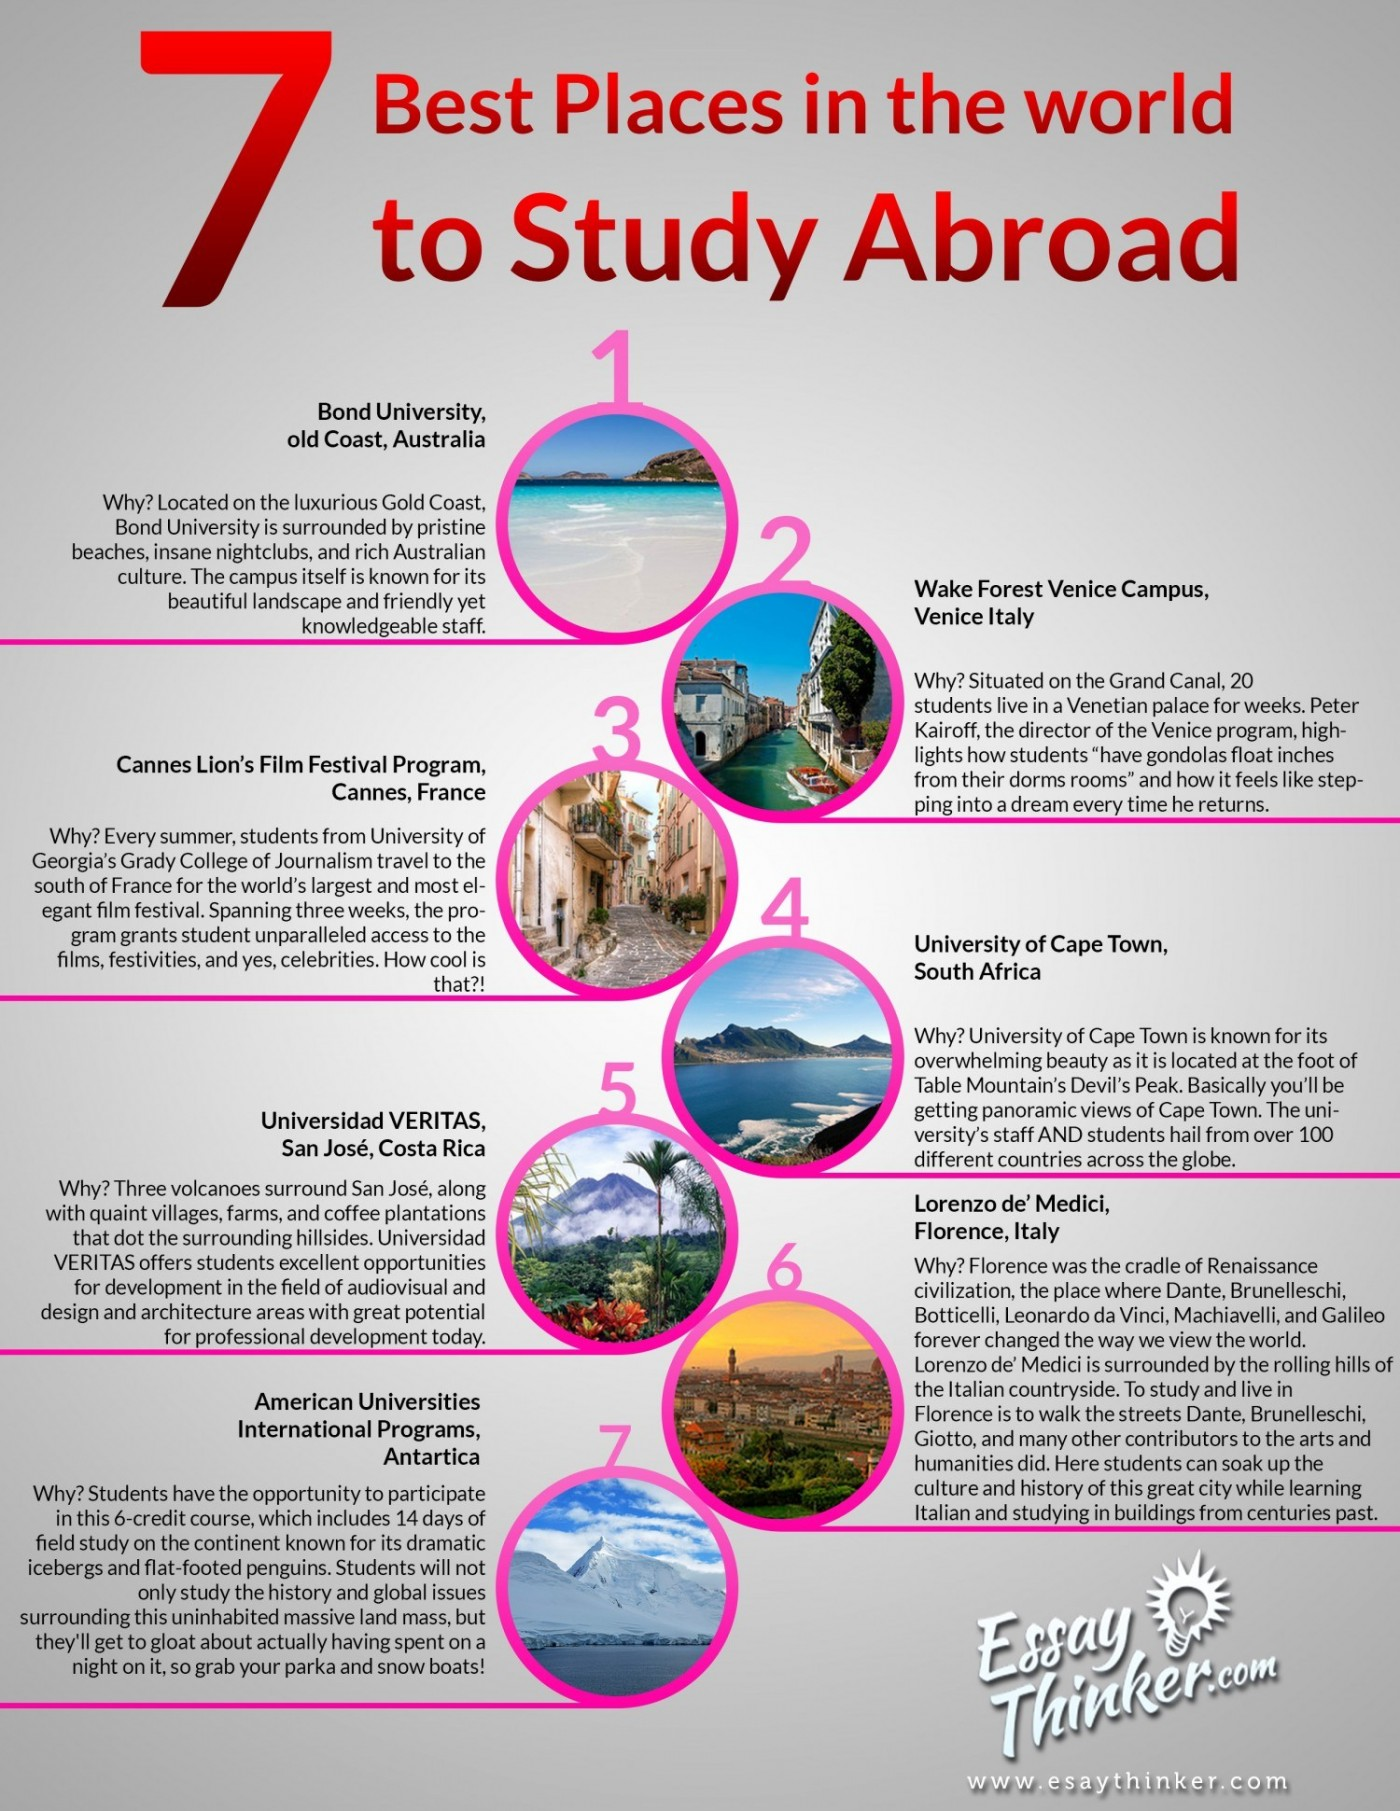 009 Studying Abroad Essay Example Best Places In The World To Study 53f49ac1d4c9b W1500 Beautiful Sample Ielts Conclusion Pdf 1400